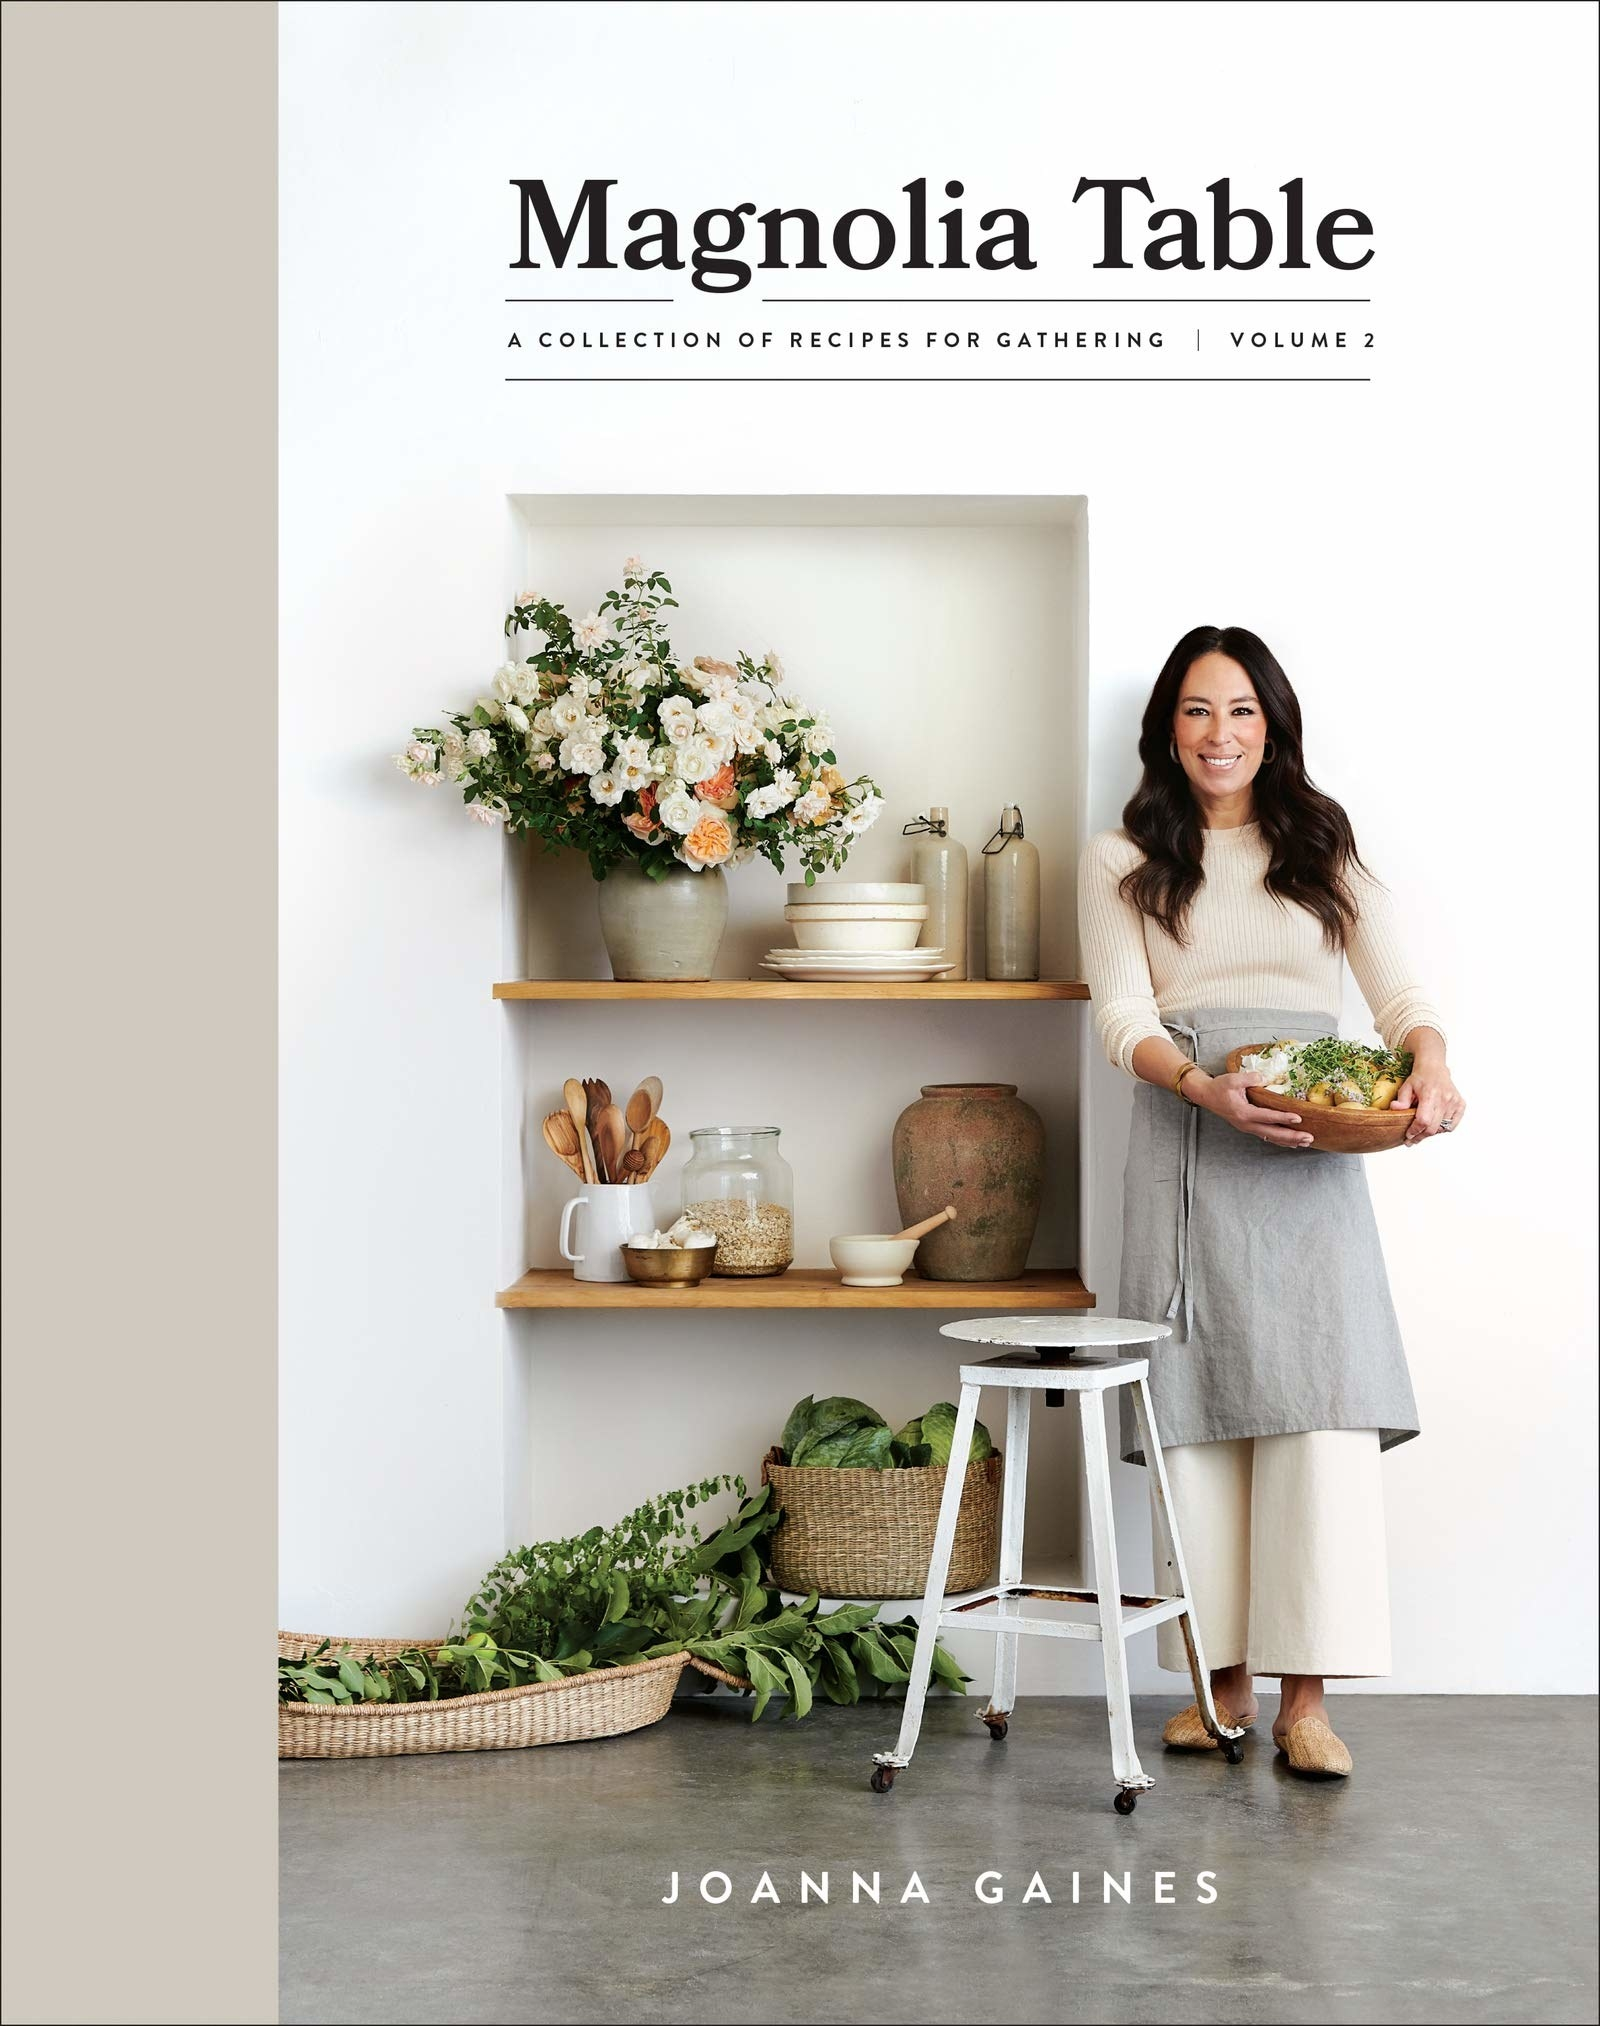 joanna gaines on the cover of her book